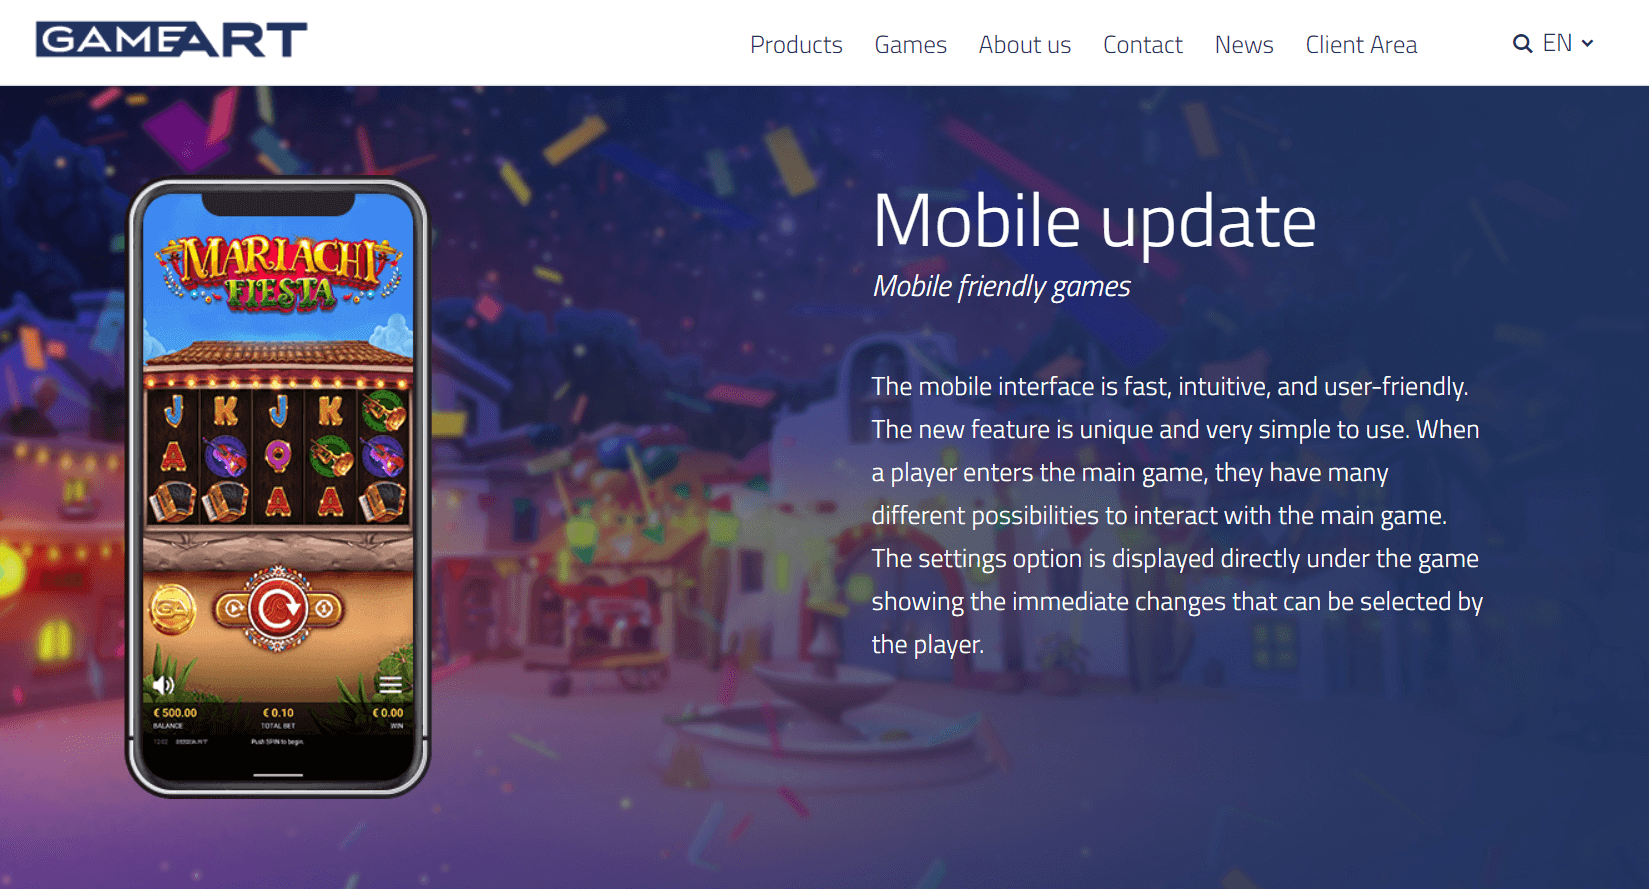 gameart mobile experience